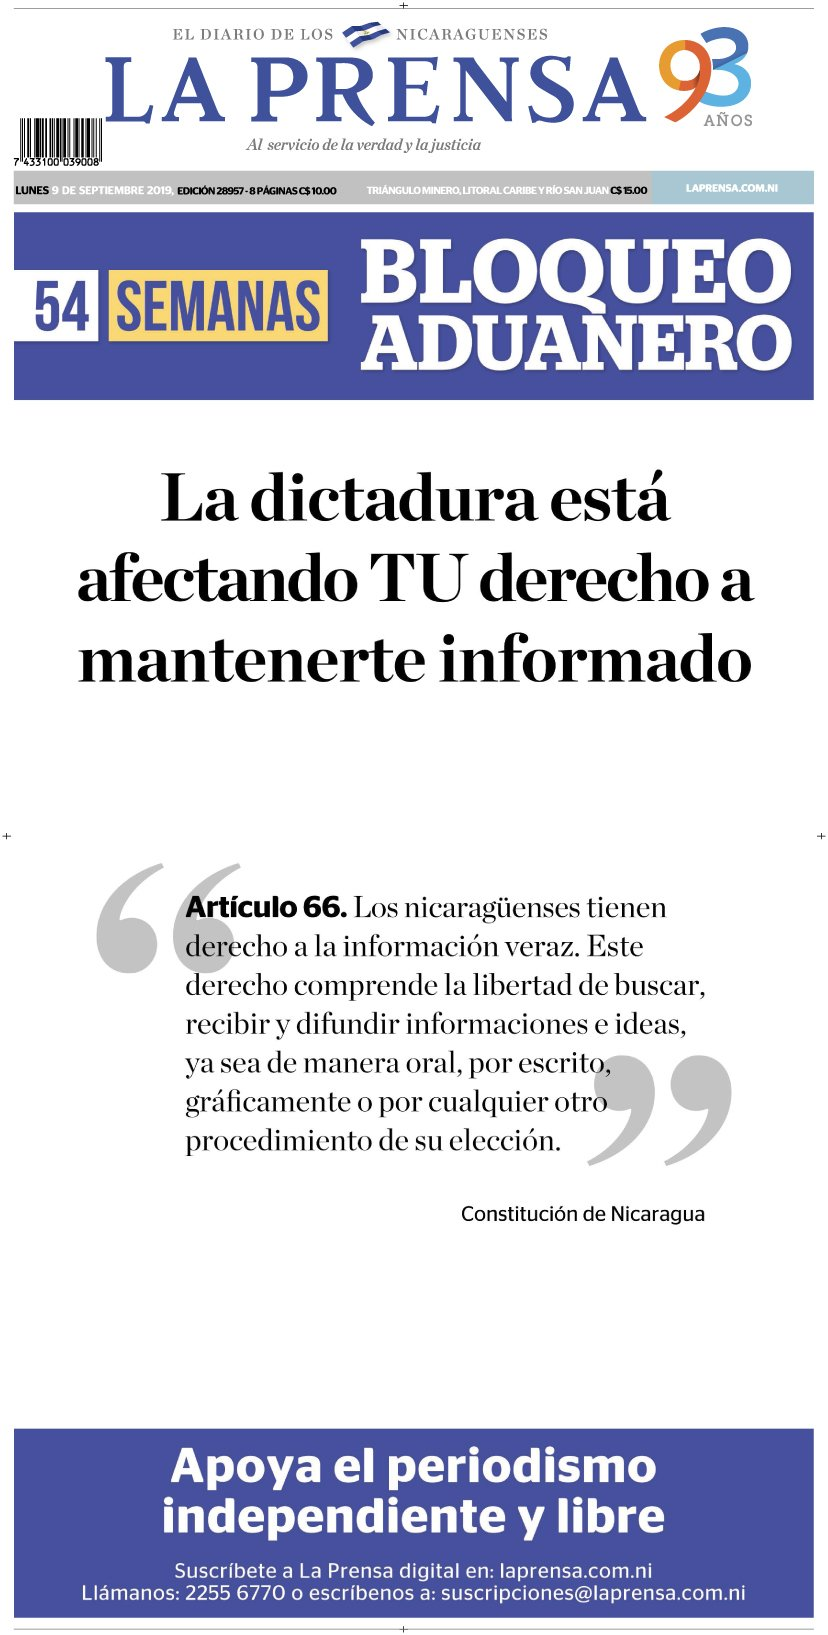 On the frontpage of its Sept. 9, 2019 edition, La Prensa published Article 66 of the constitution regarding the right to truthful information. (Screenshot)